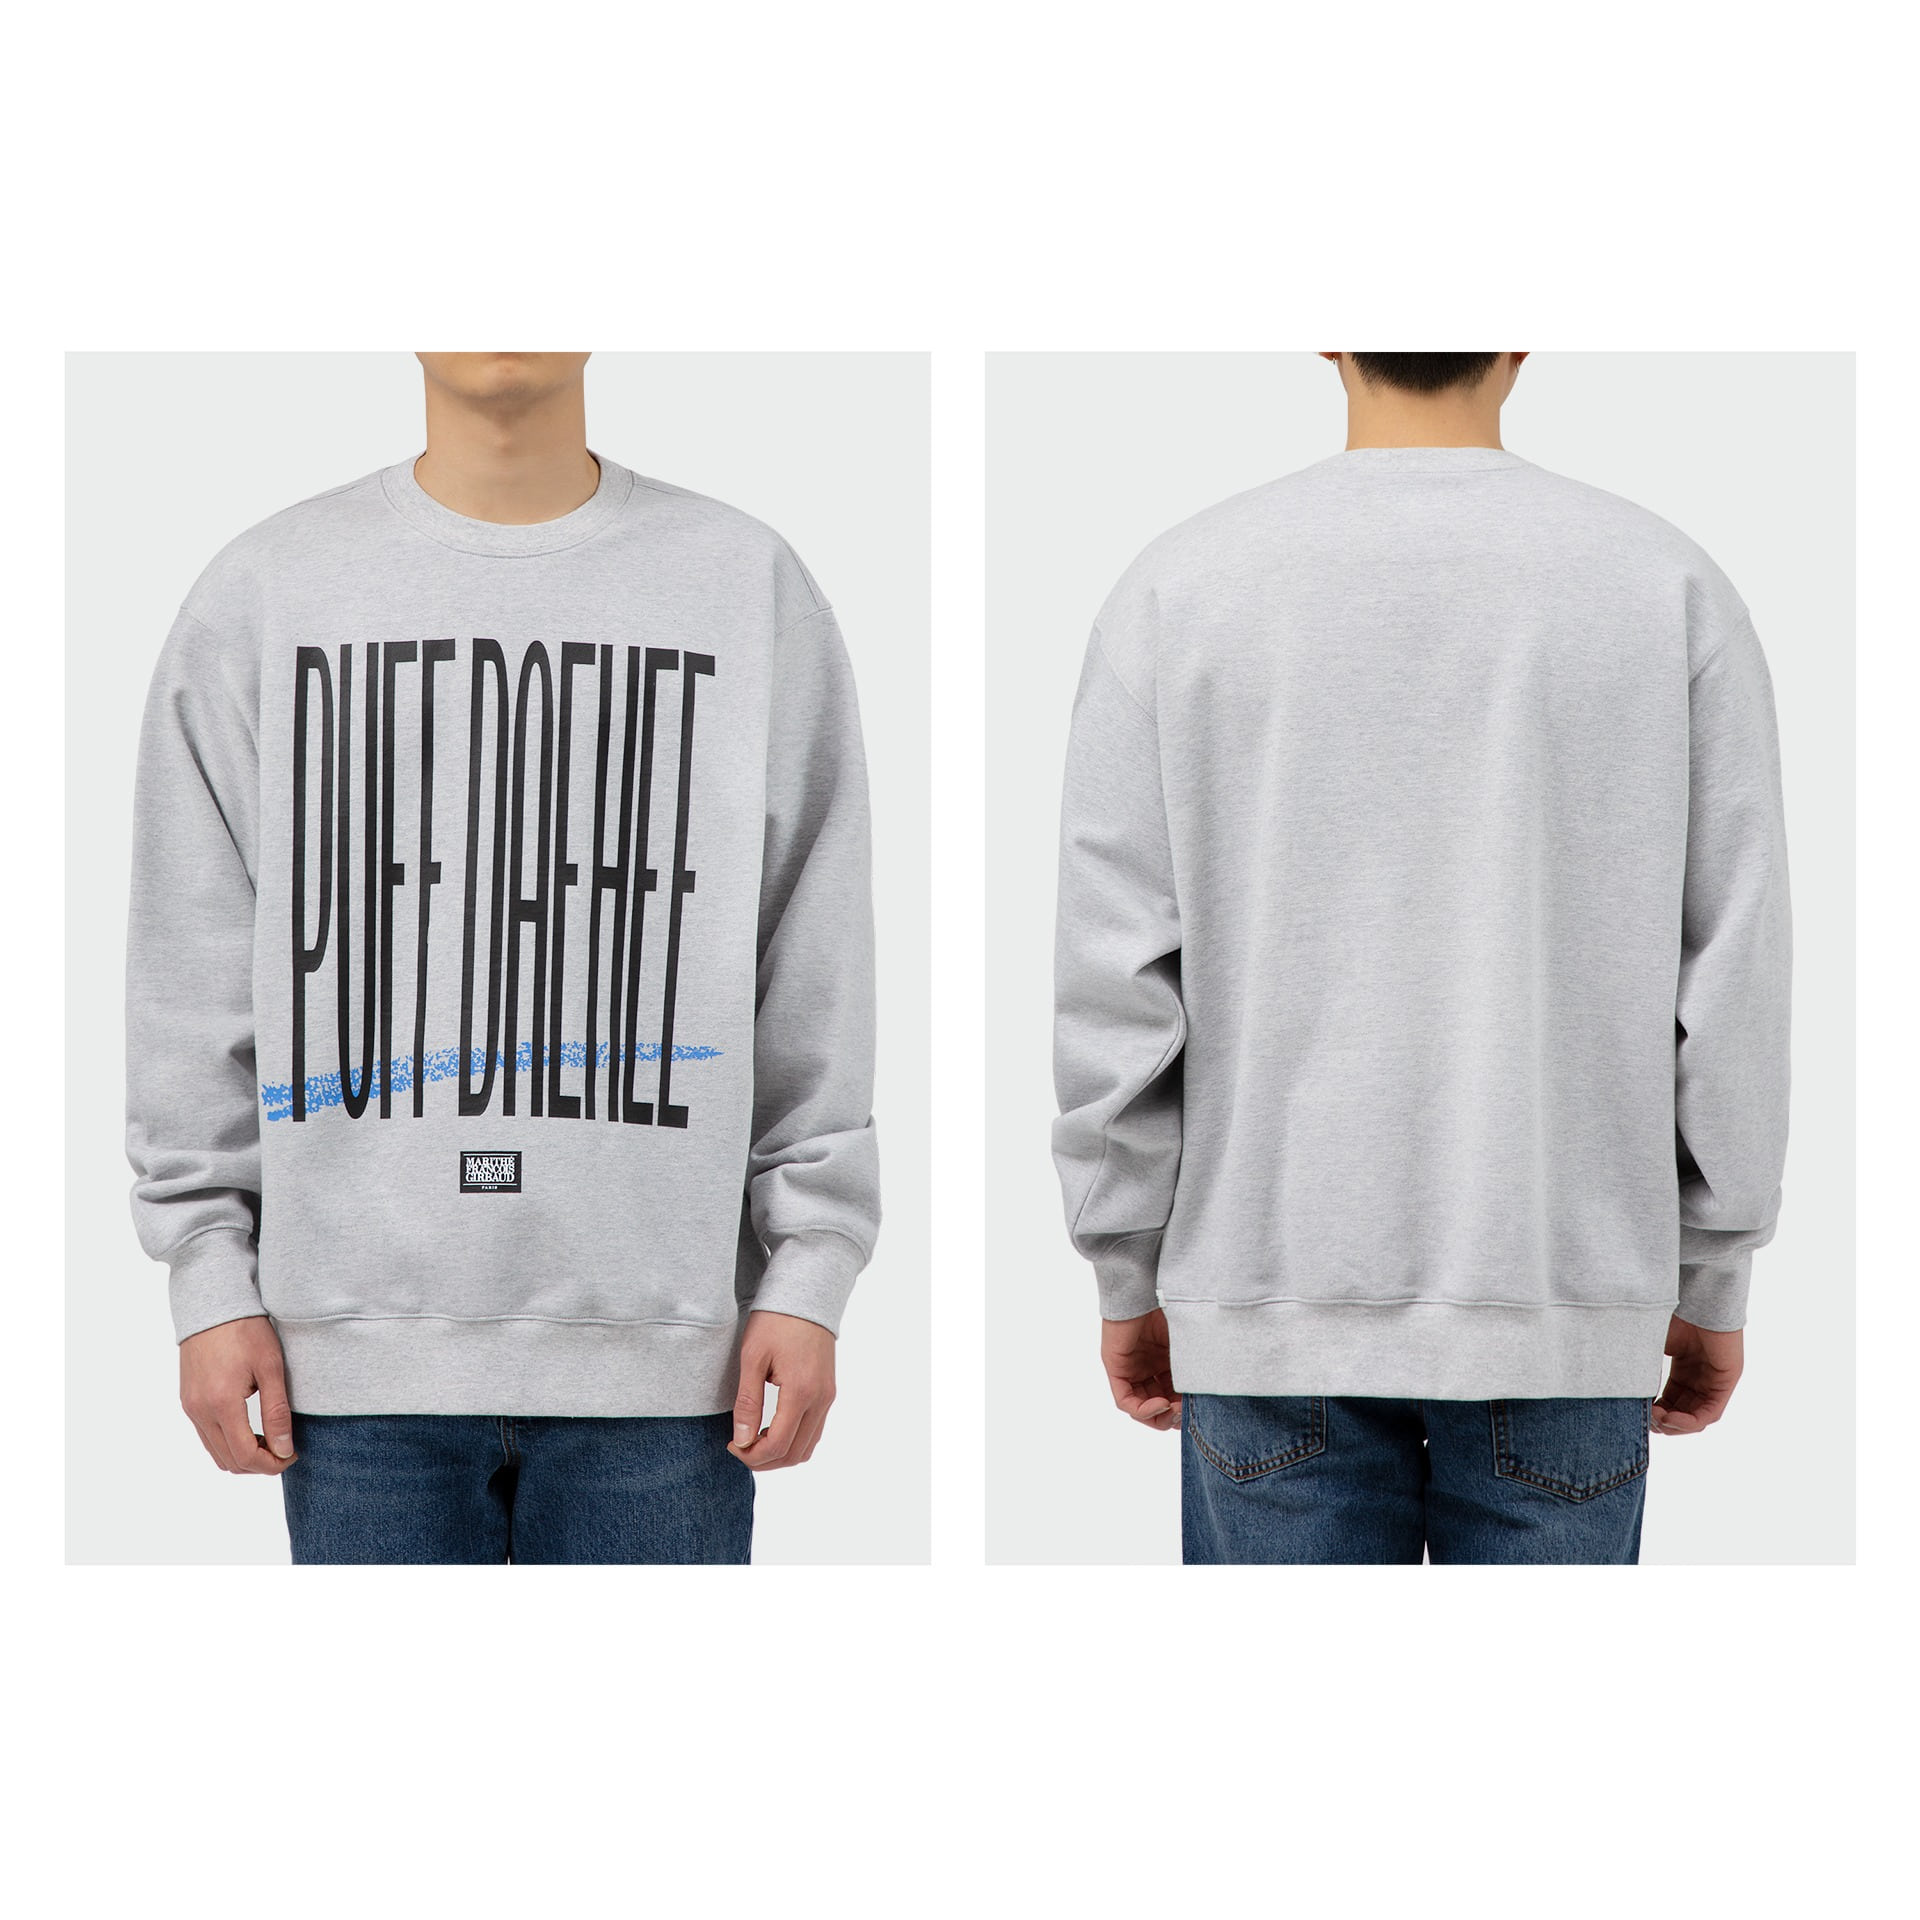 layer-MFG X 8BALLTOWN PUFF DAEHEE SWEATSHIRT heather gray♡韓國男裝上衣